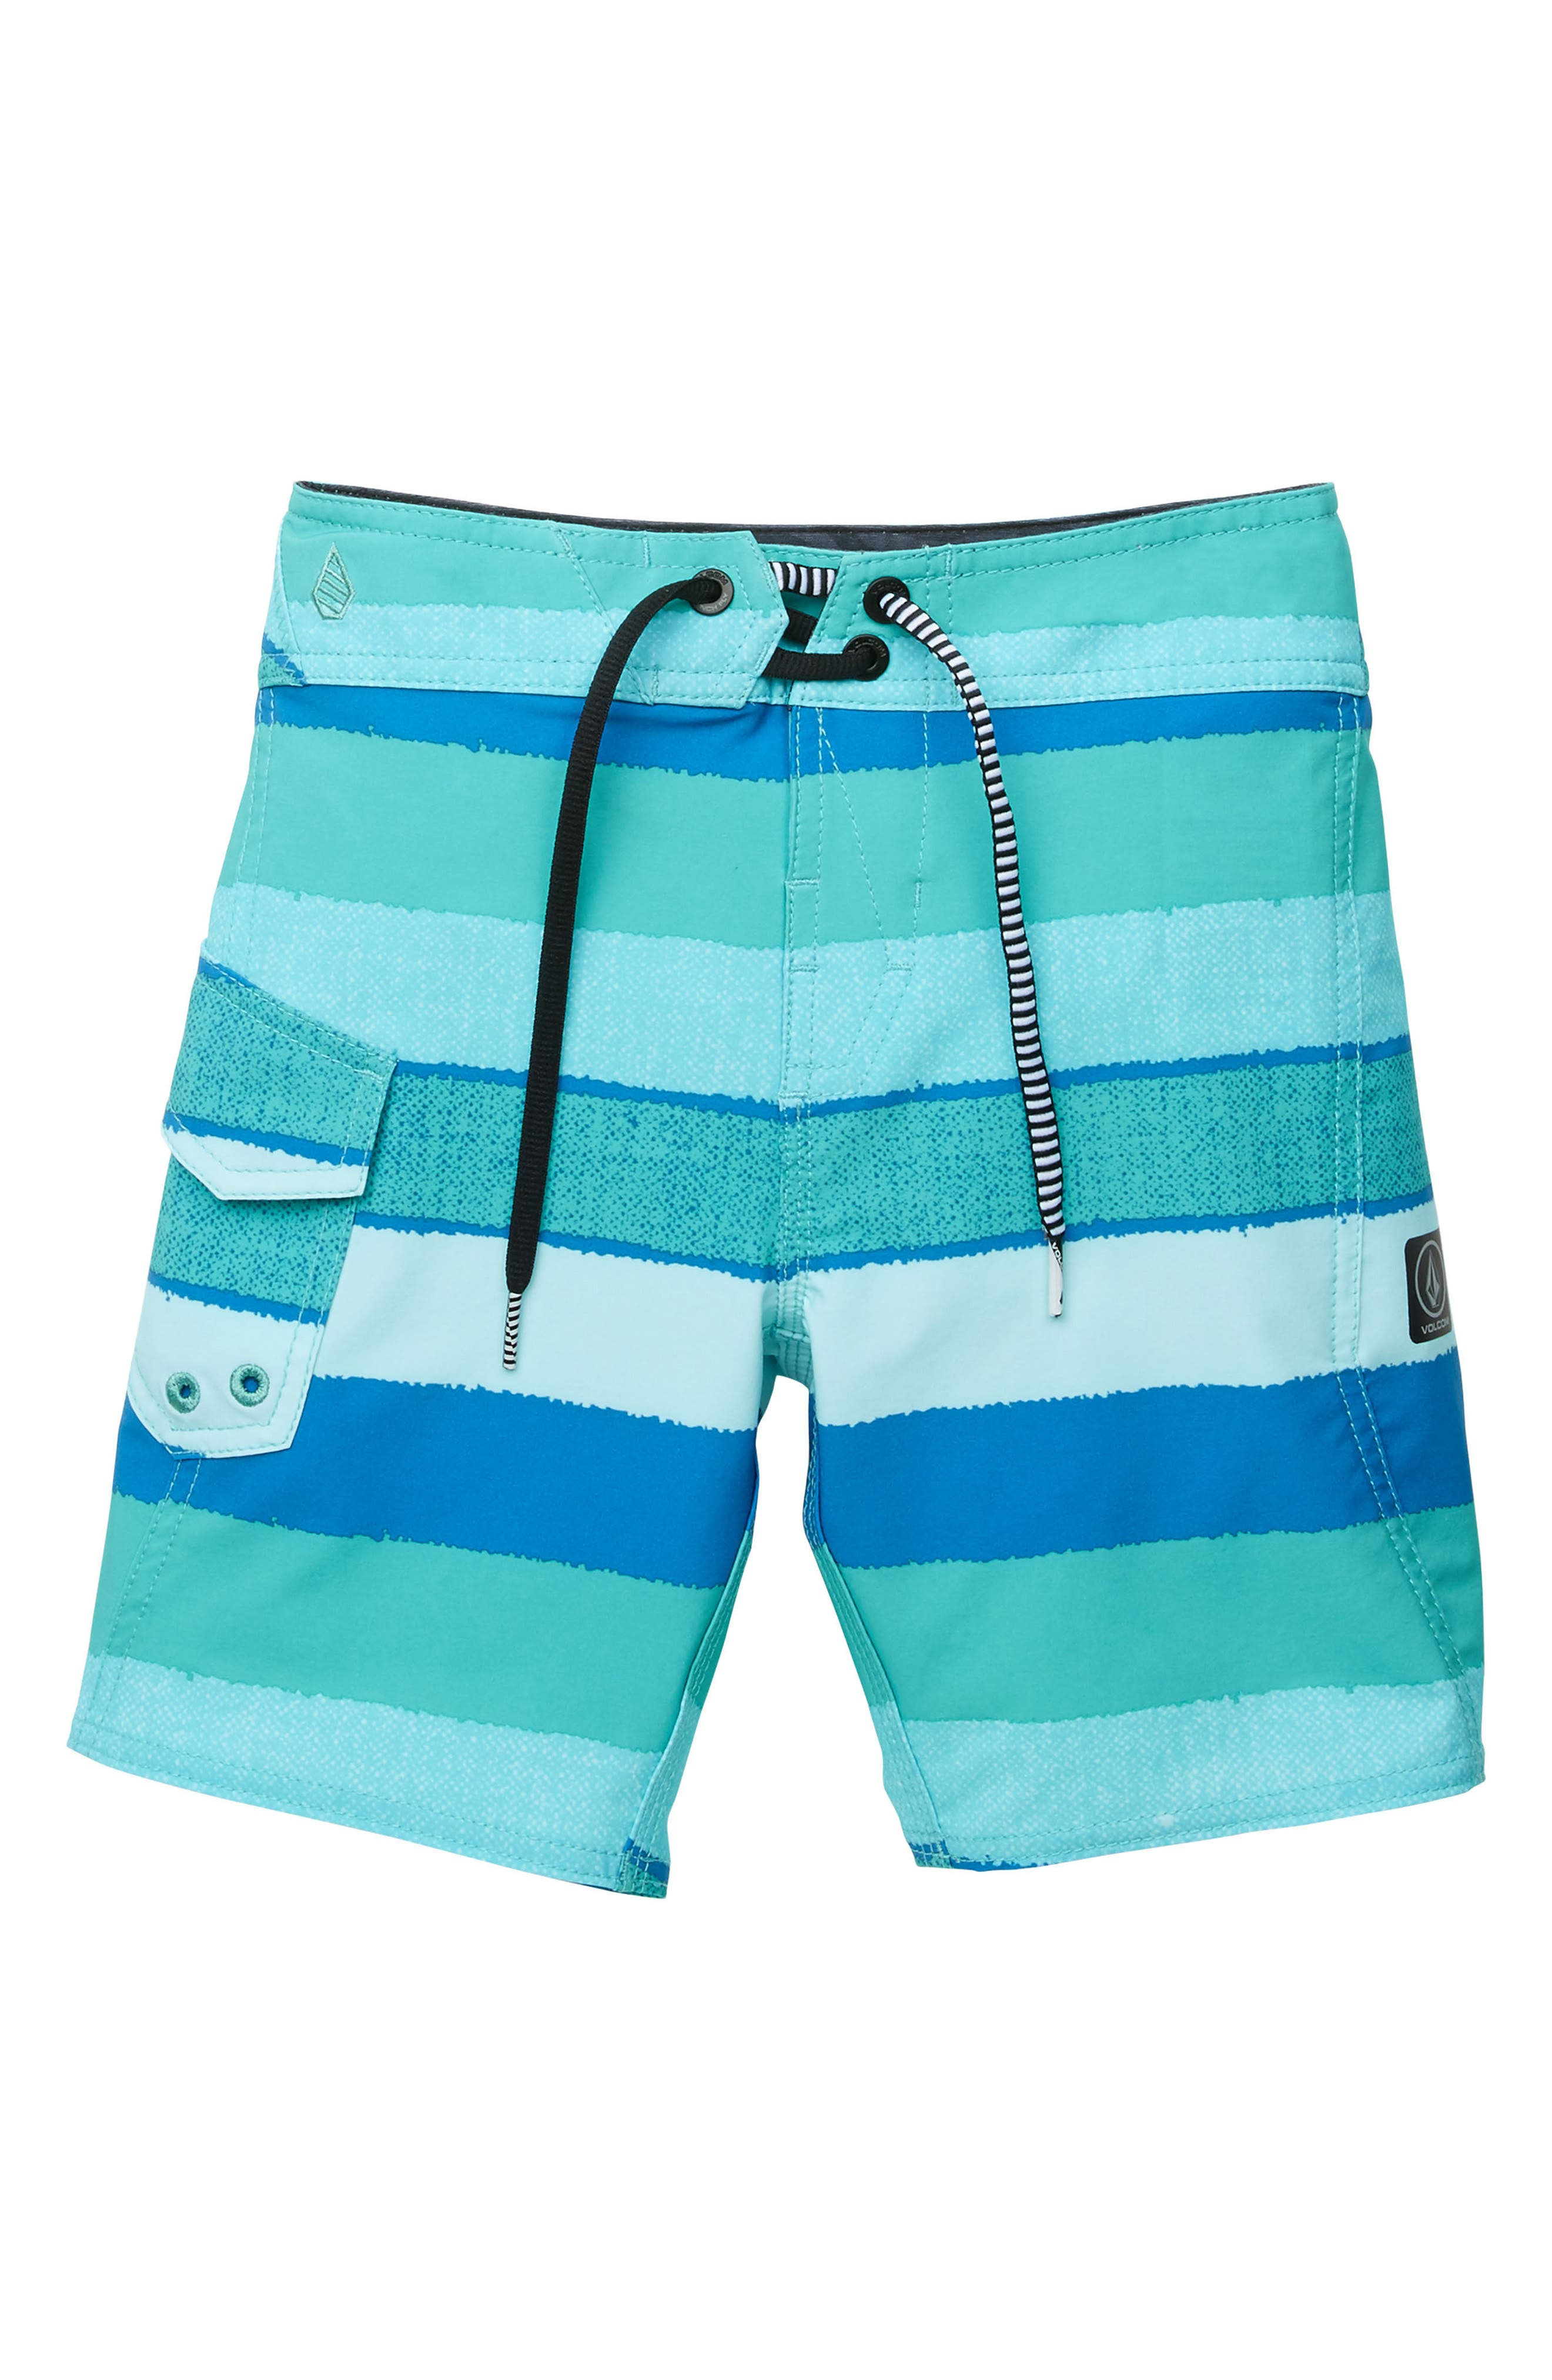 Magnetic Liney Mod Board Shorts,                             Main thumbnail 1, color,                             Turquoise